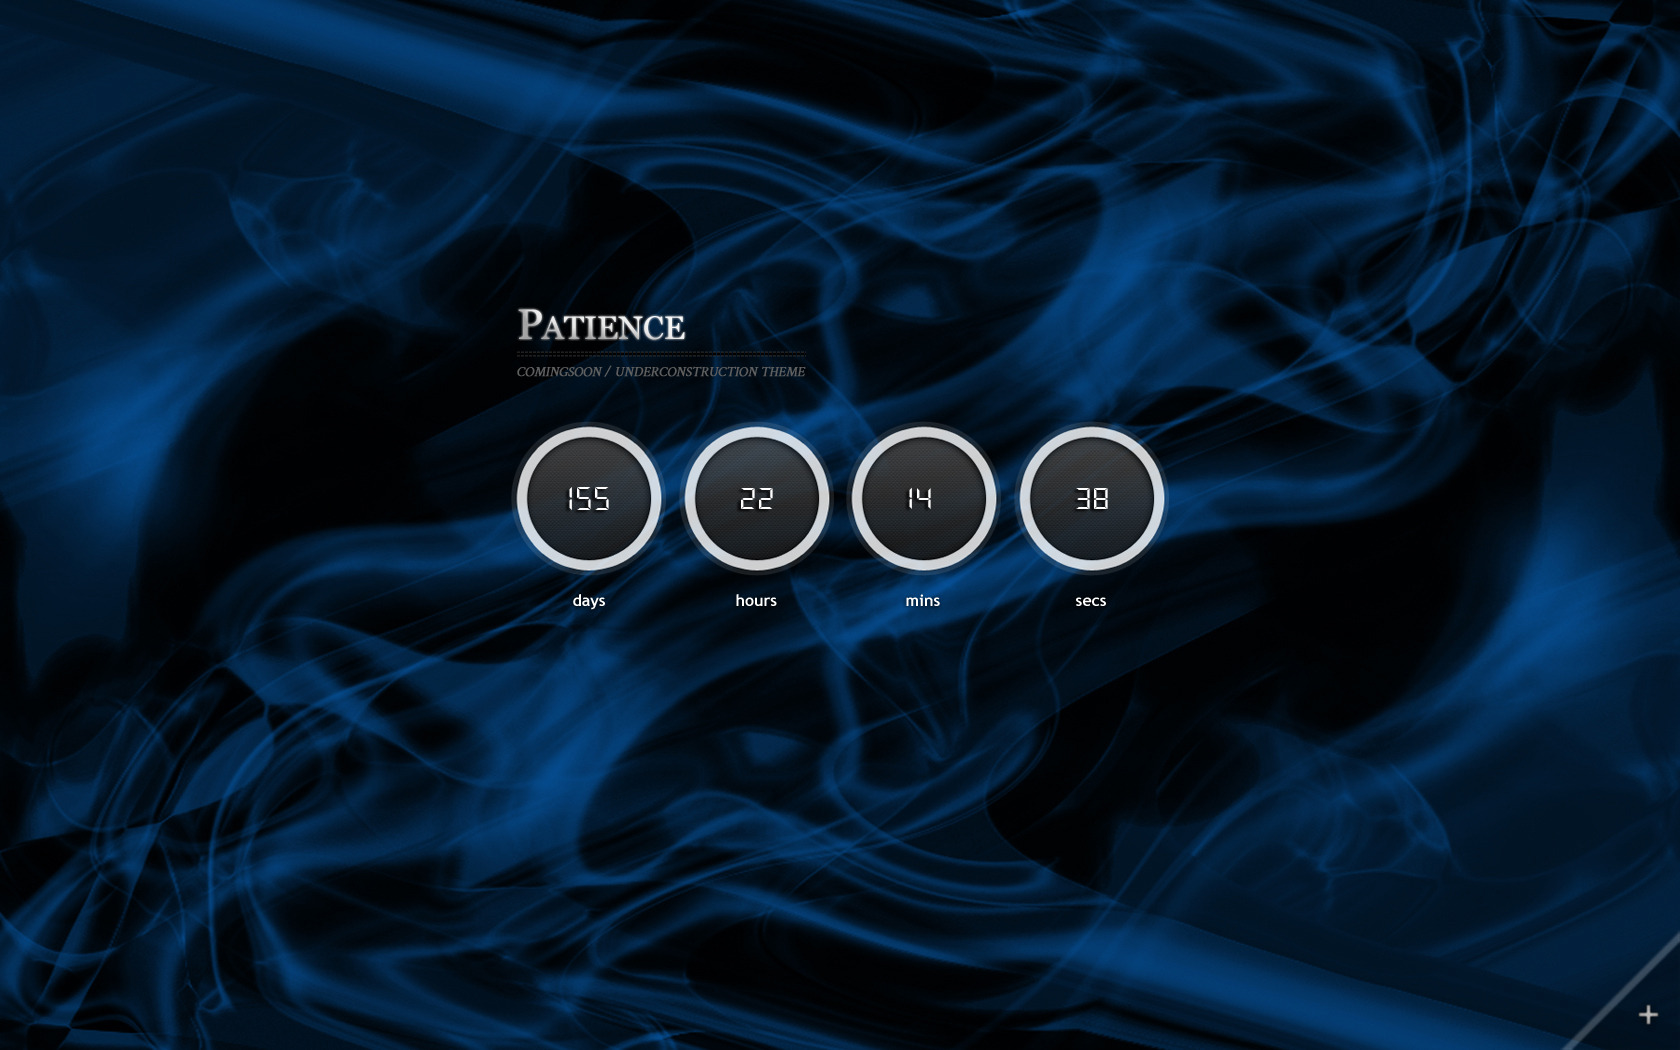 Patience - Full Background Underconstruction